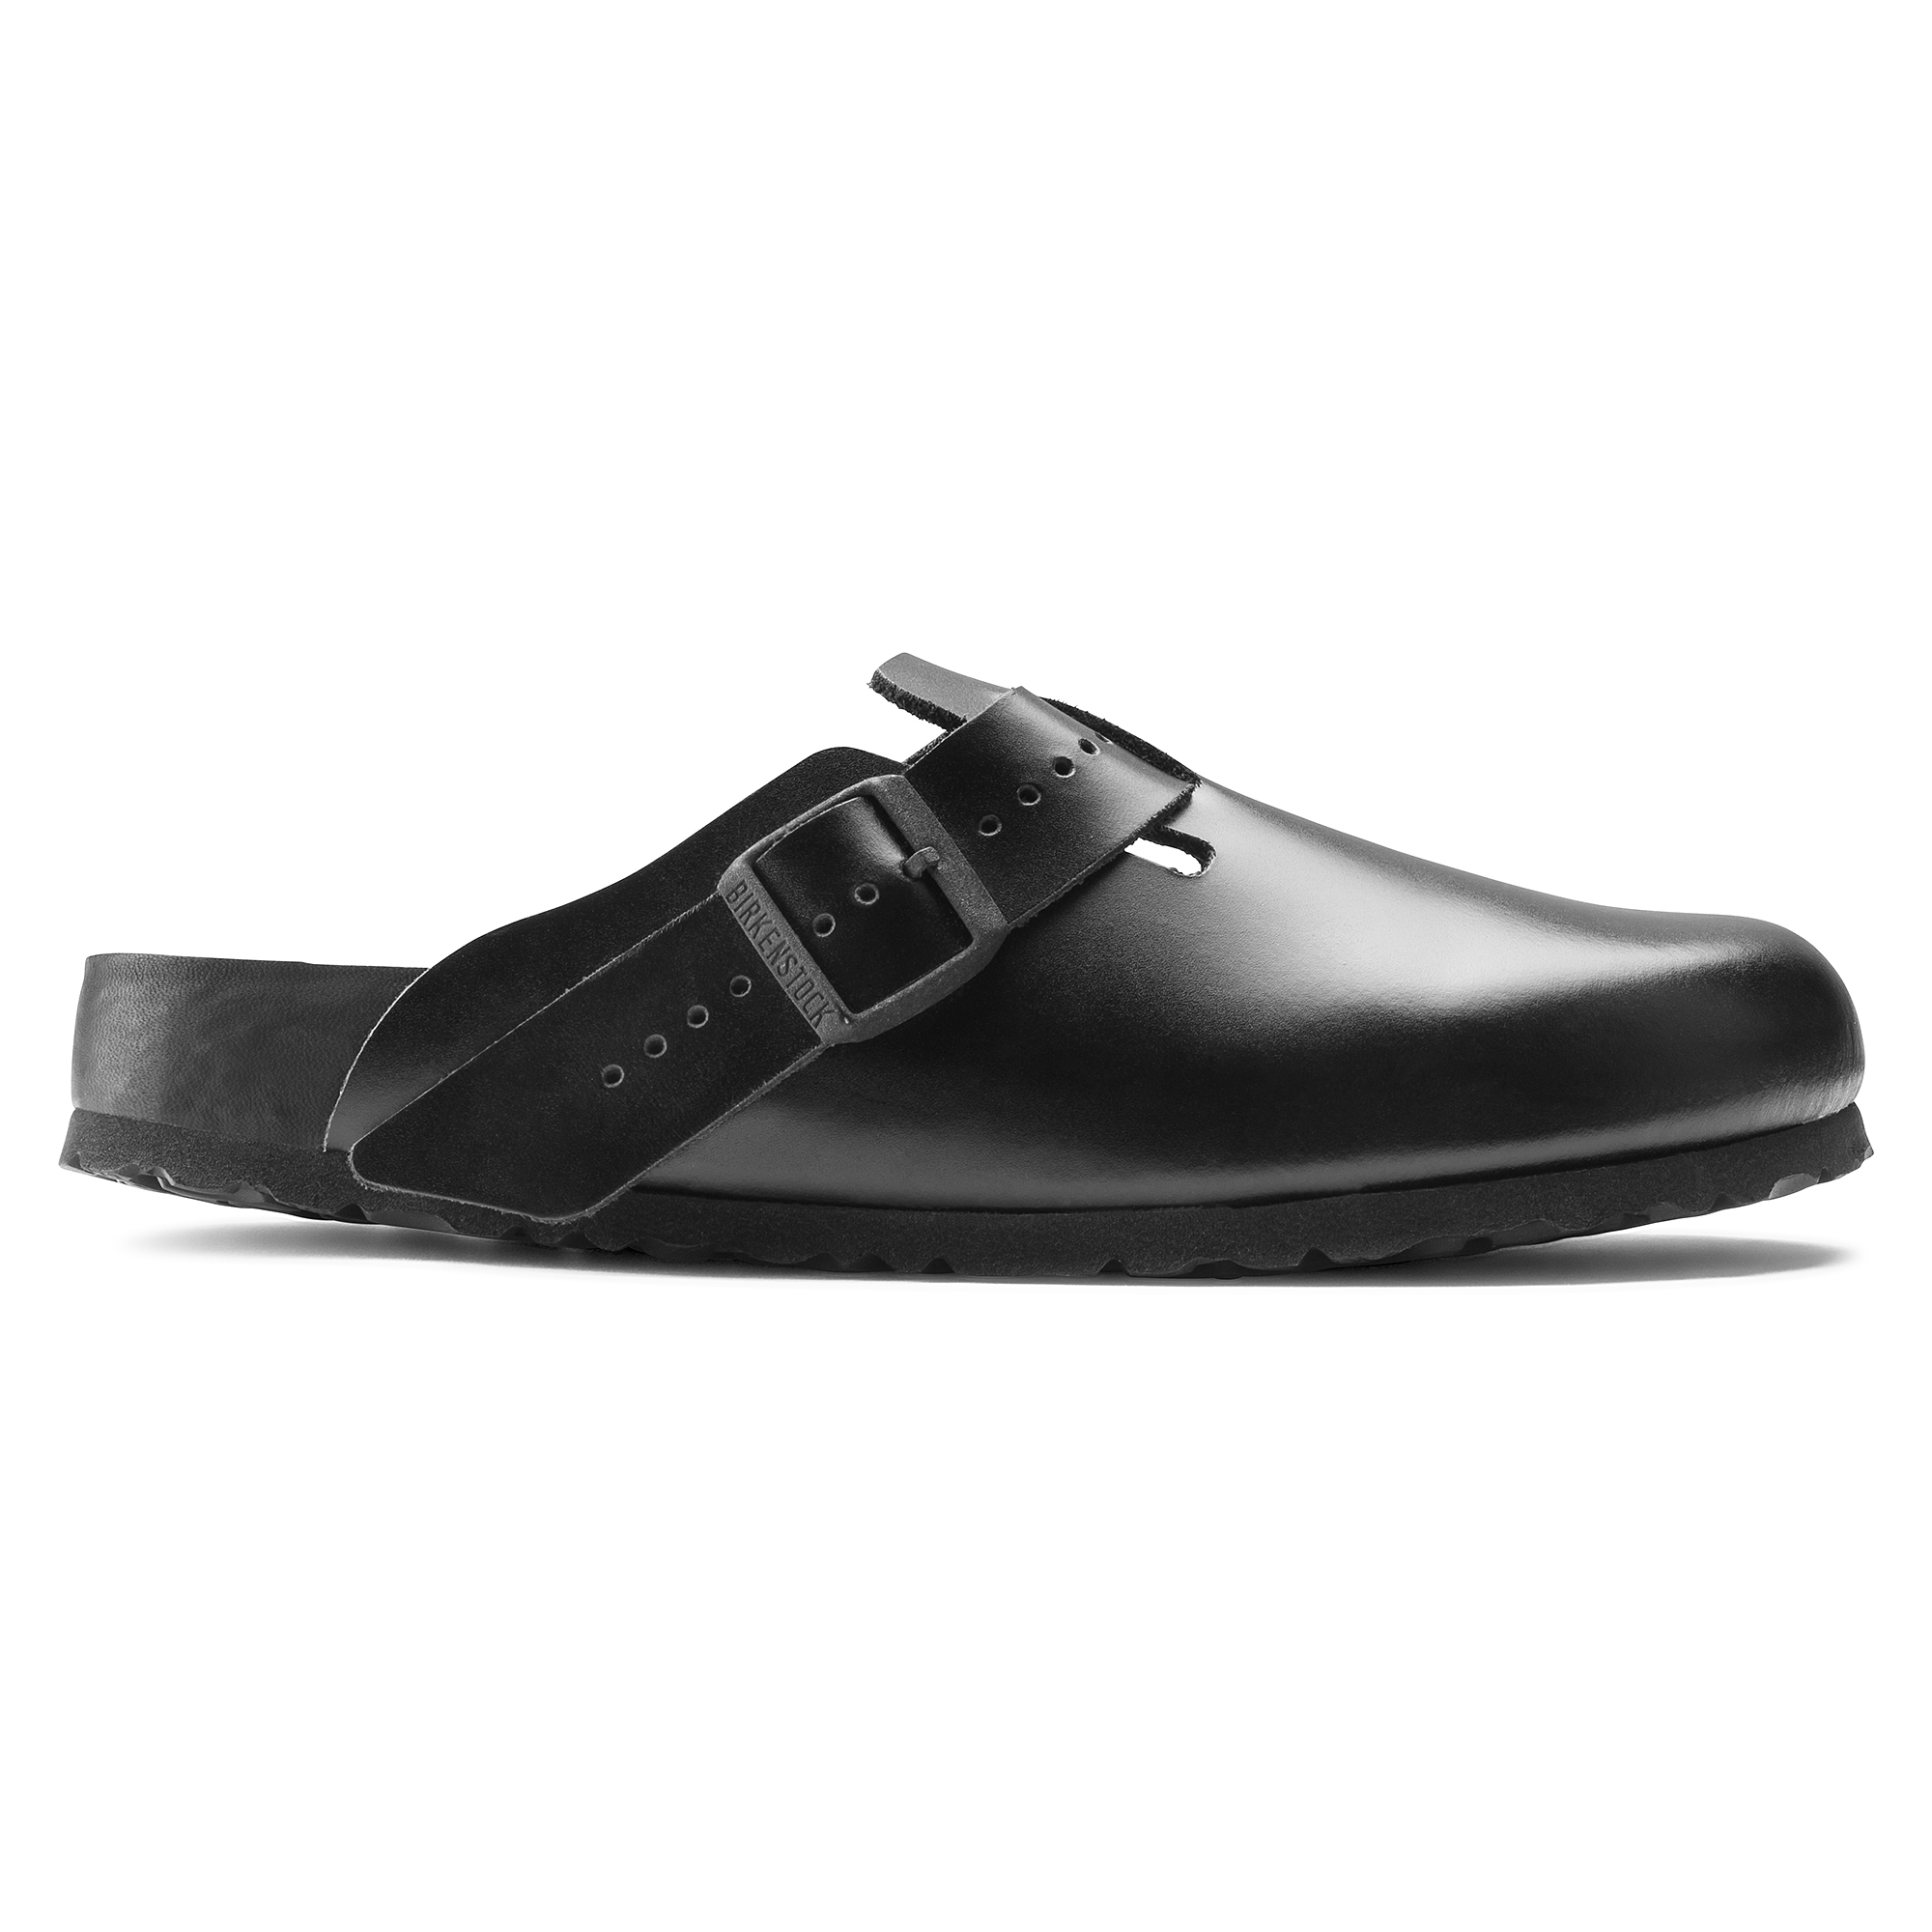 61d17930676 ... Boston Rick Owens Amalfi Black ...